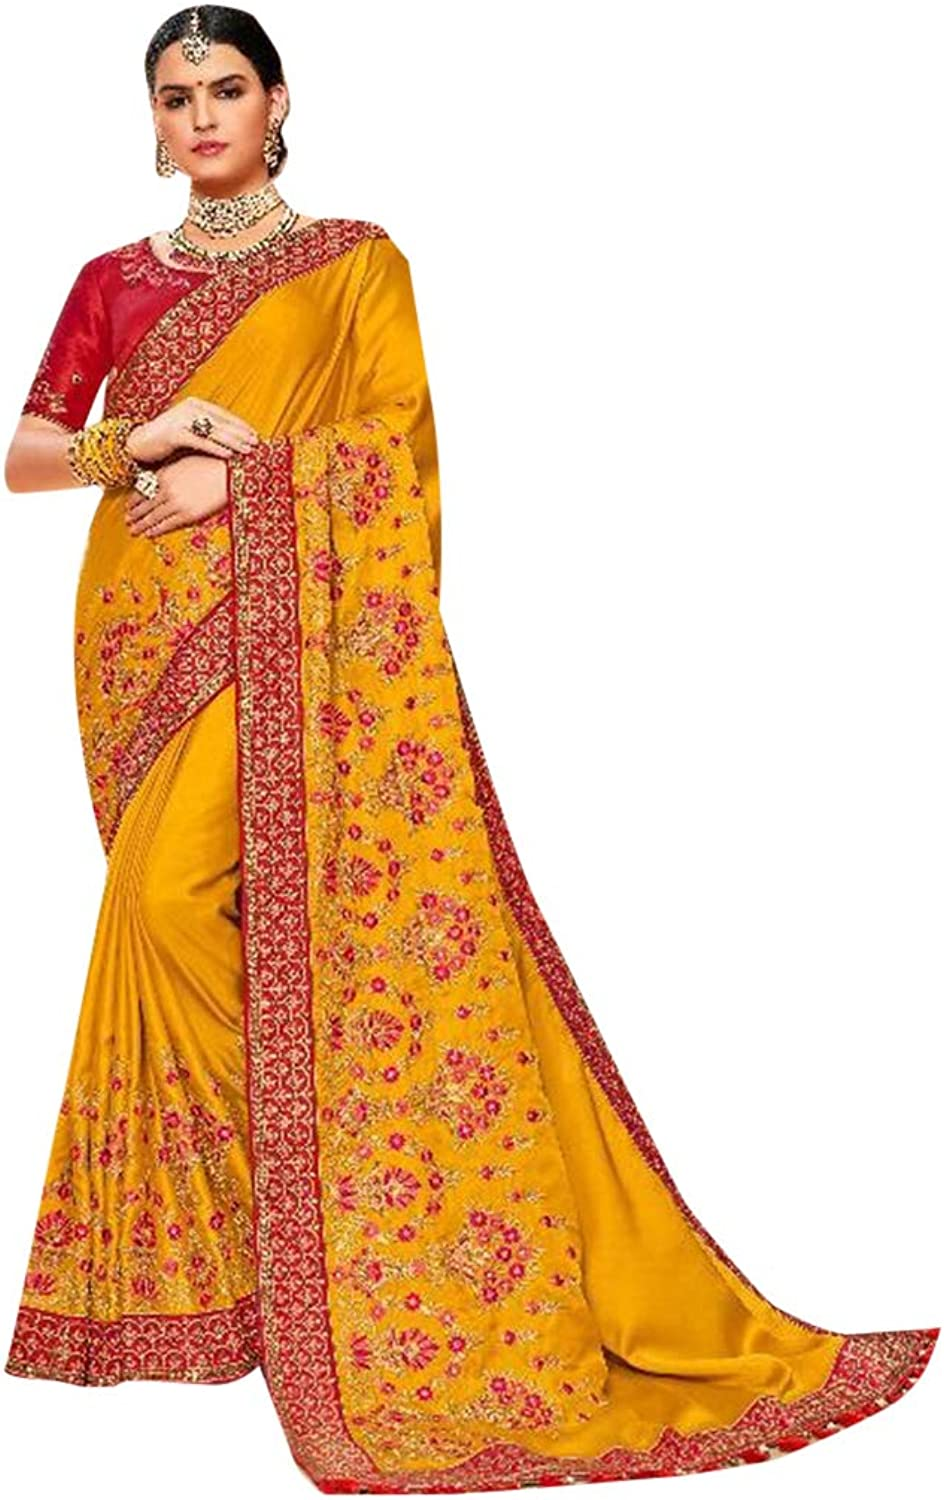 Mustard Yellow Designer Reception wear Satin Silk Sari for Women Indian Zari work Saree with Blouse 7635